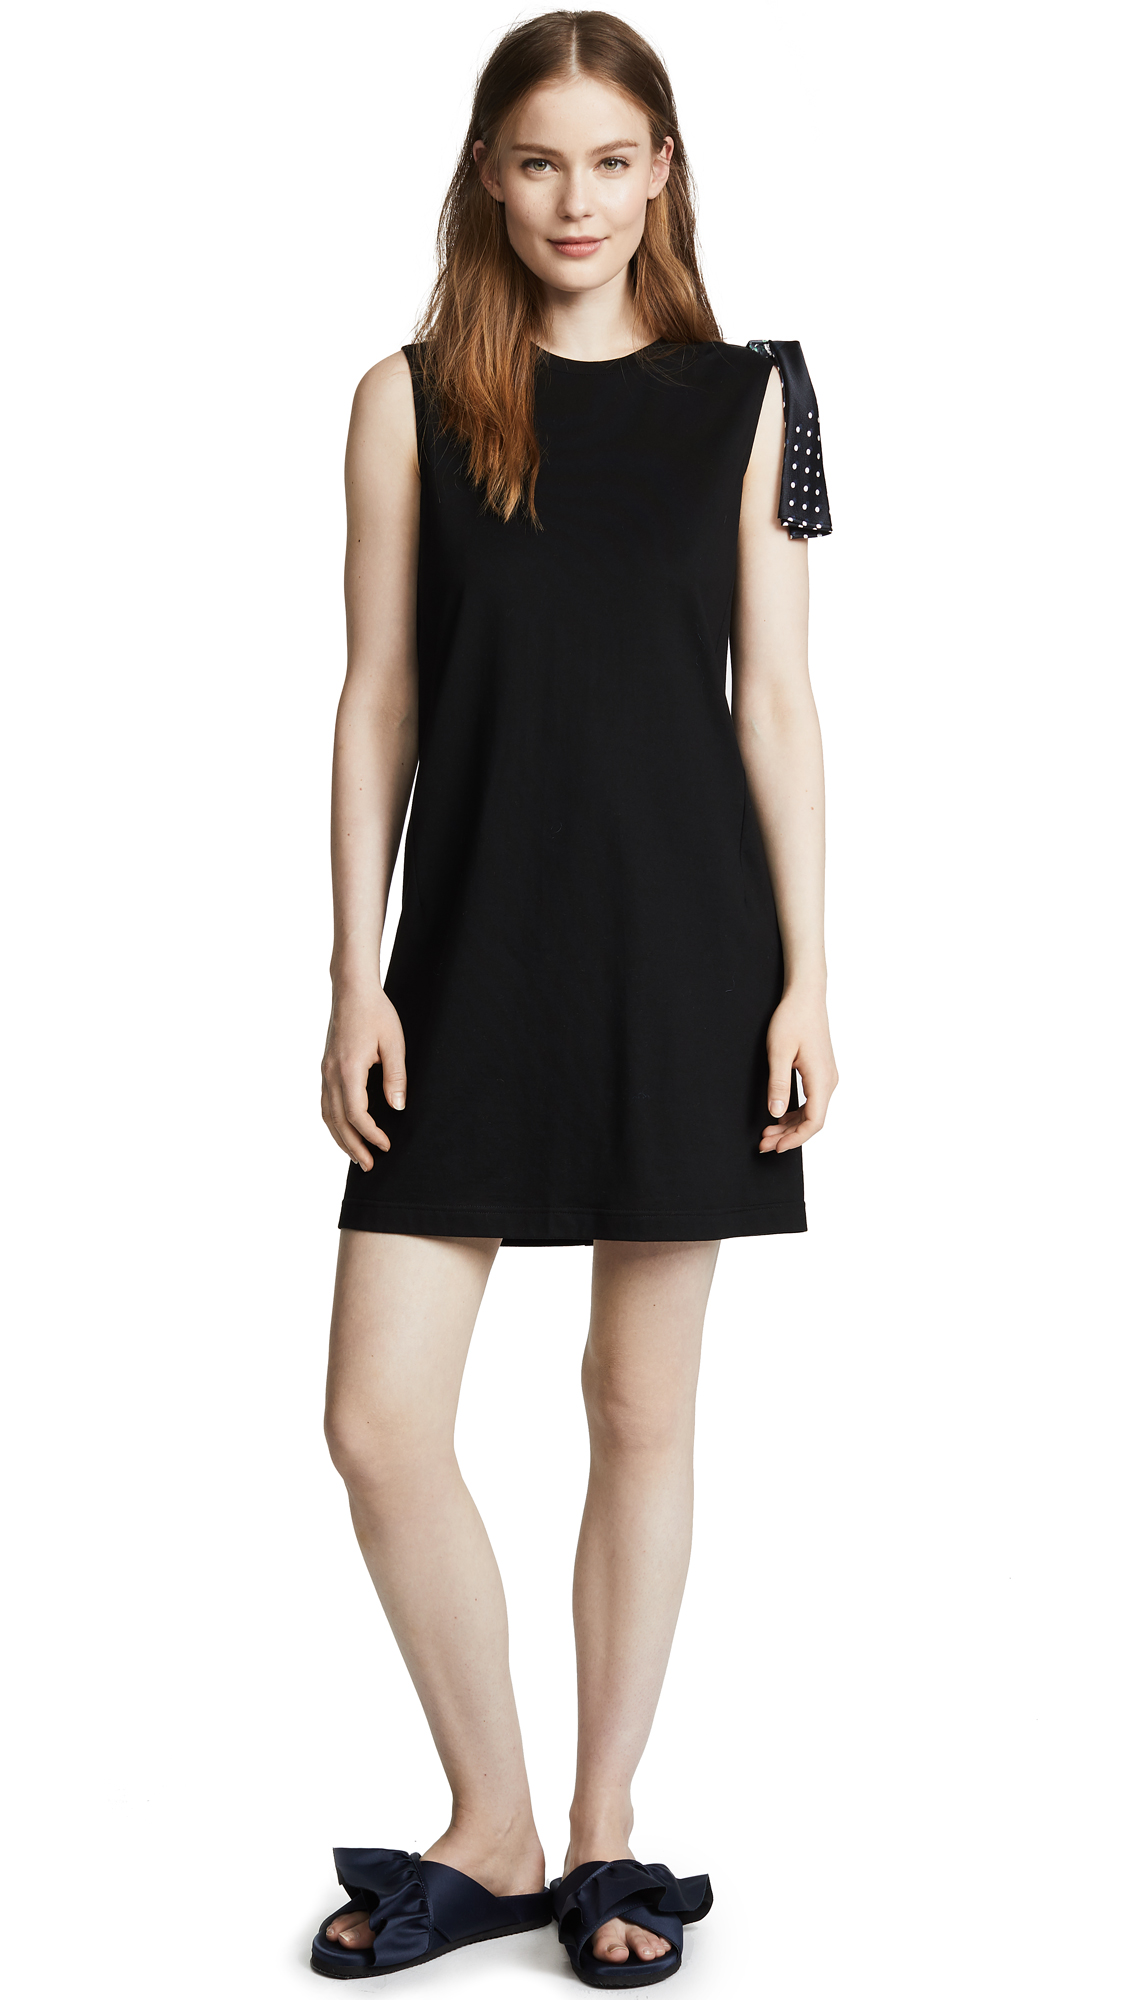 RHIE Danny Sleeveless Dress with Scarf Knot online sales